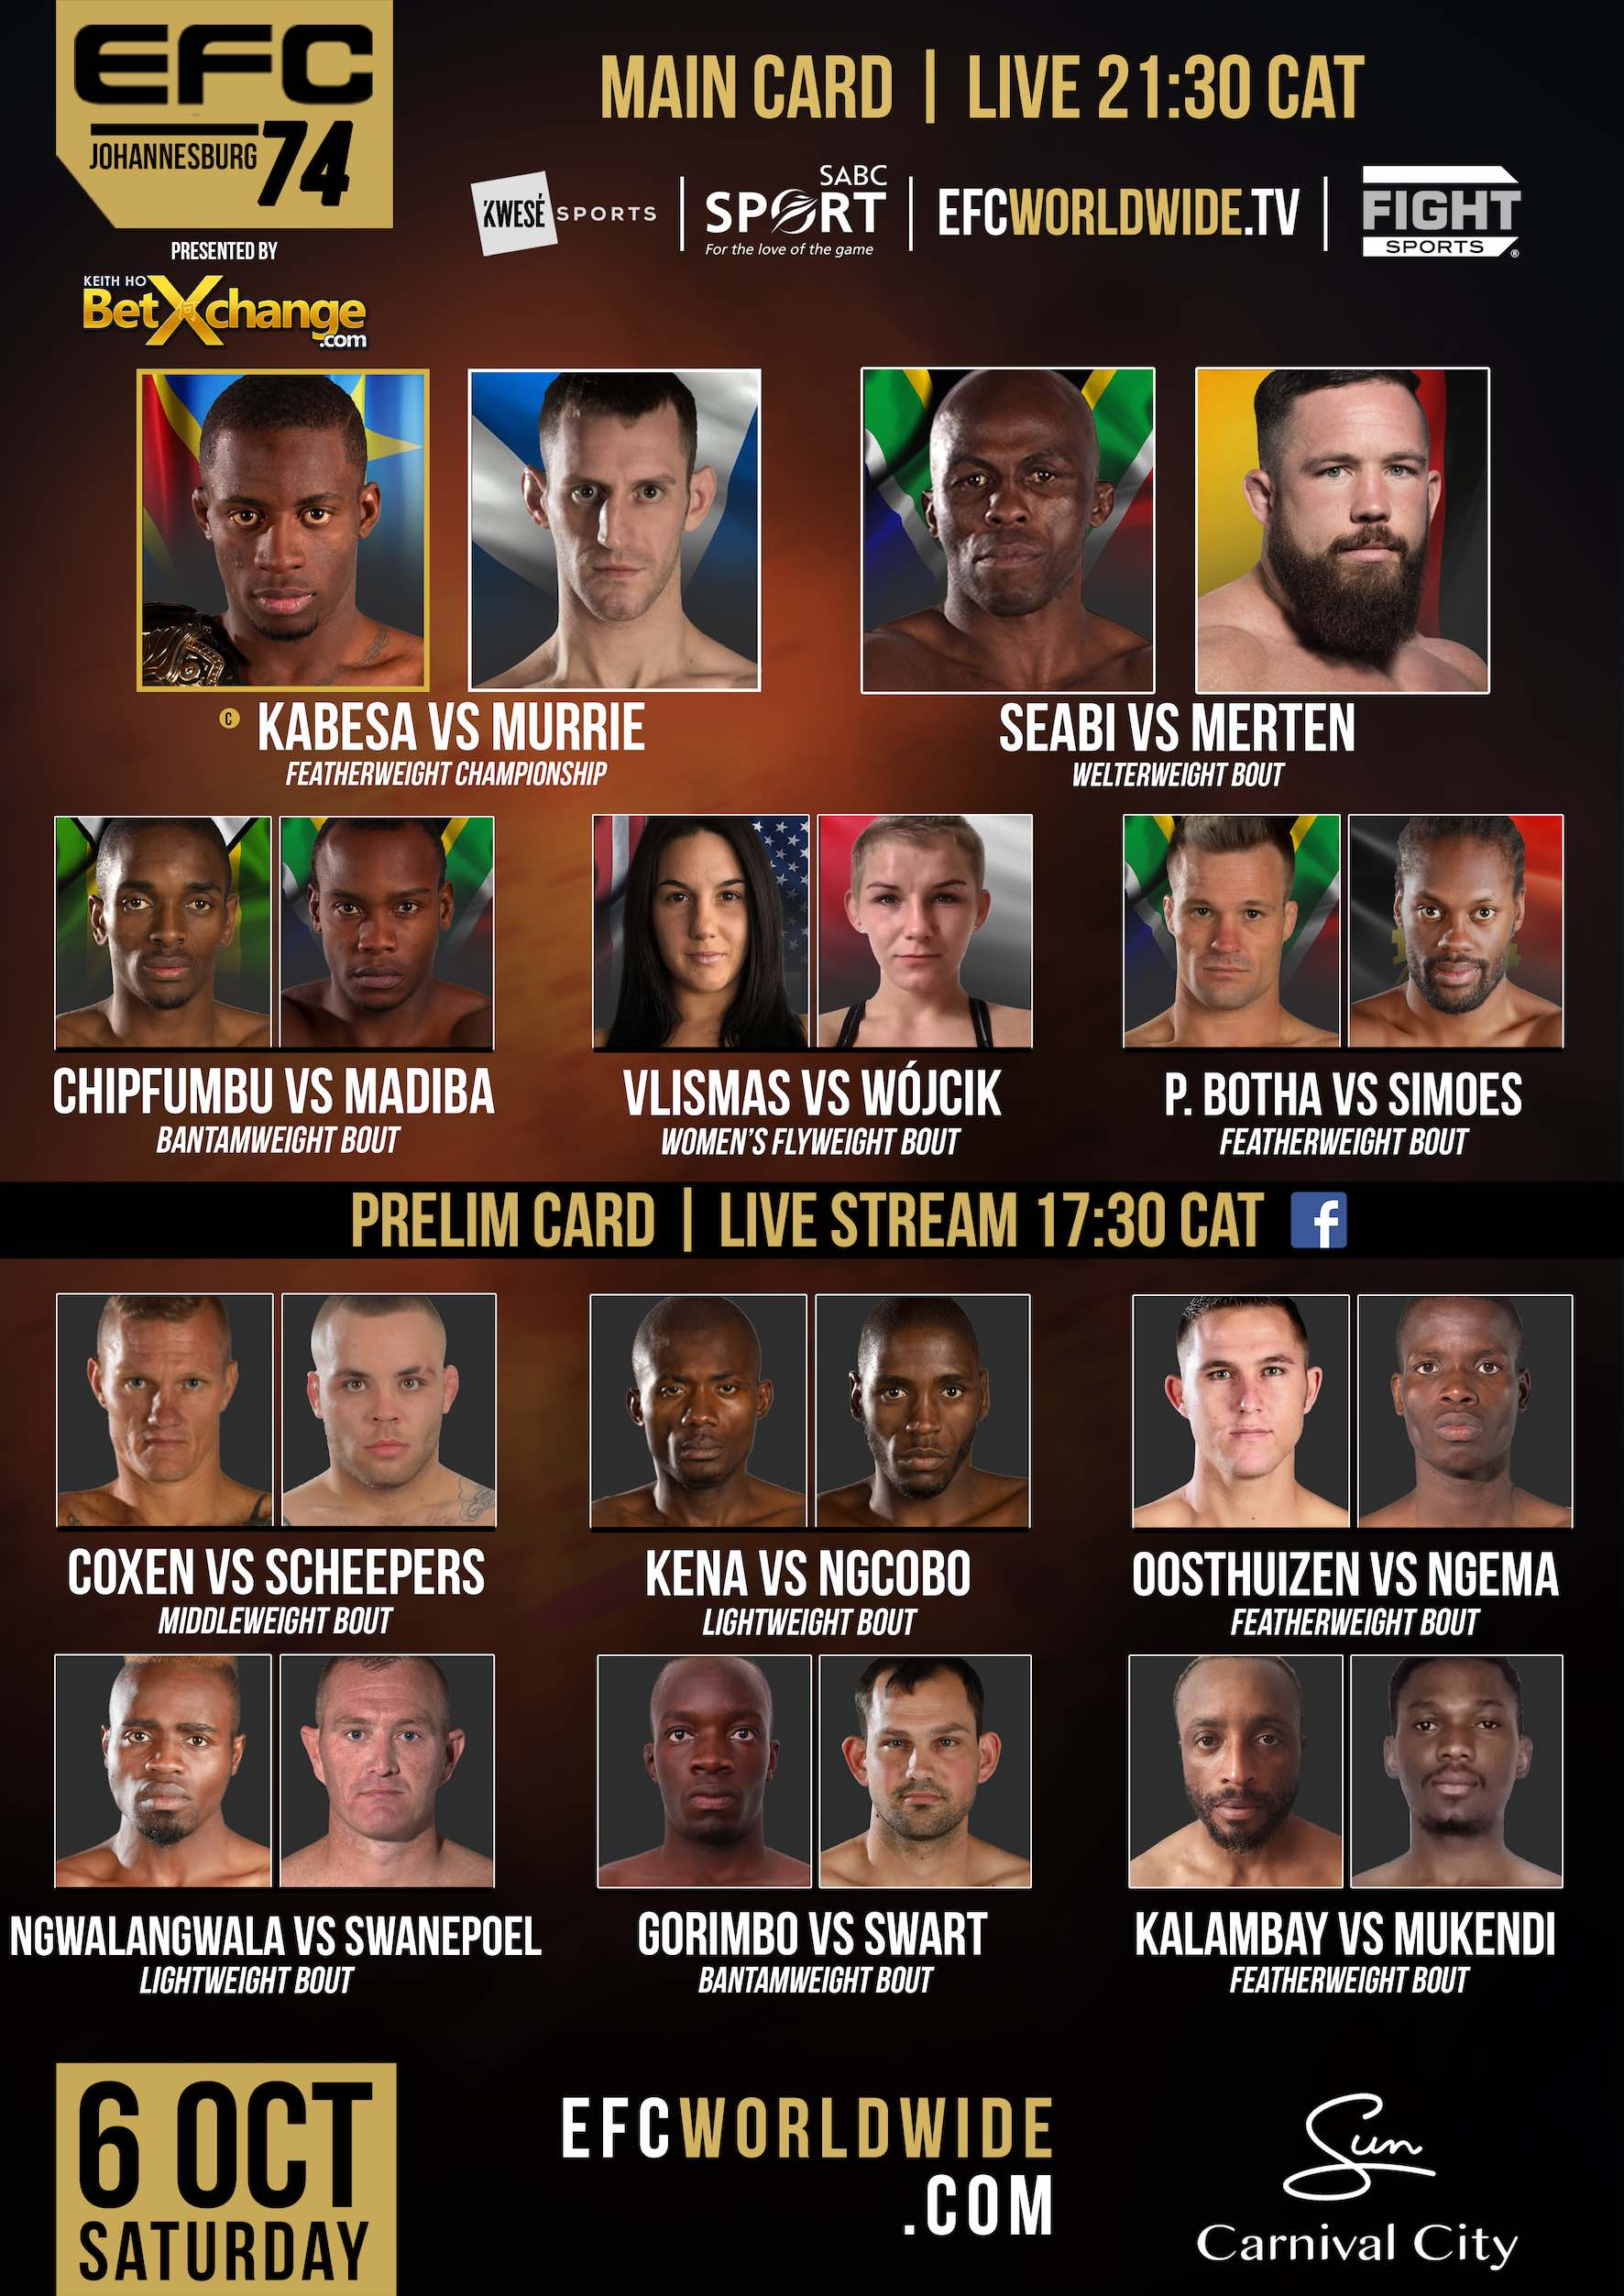 EFC 74 fight card featuring 11 exciting MMA fights